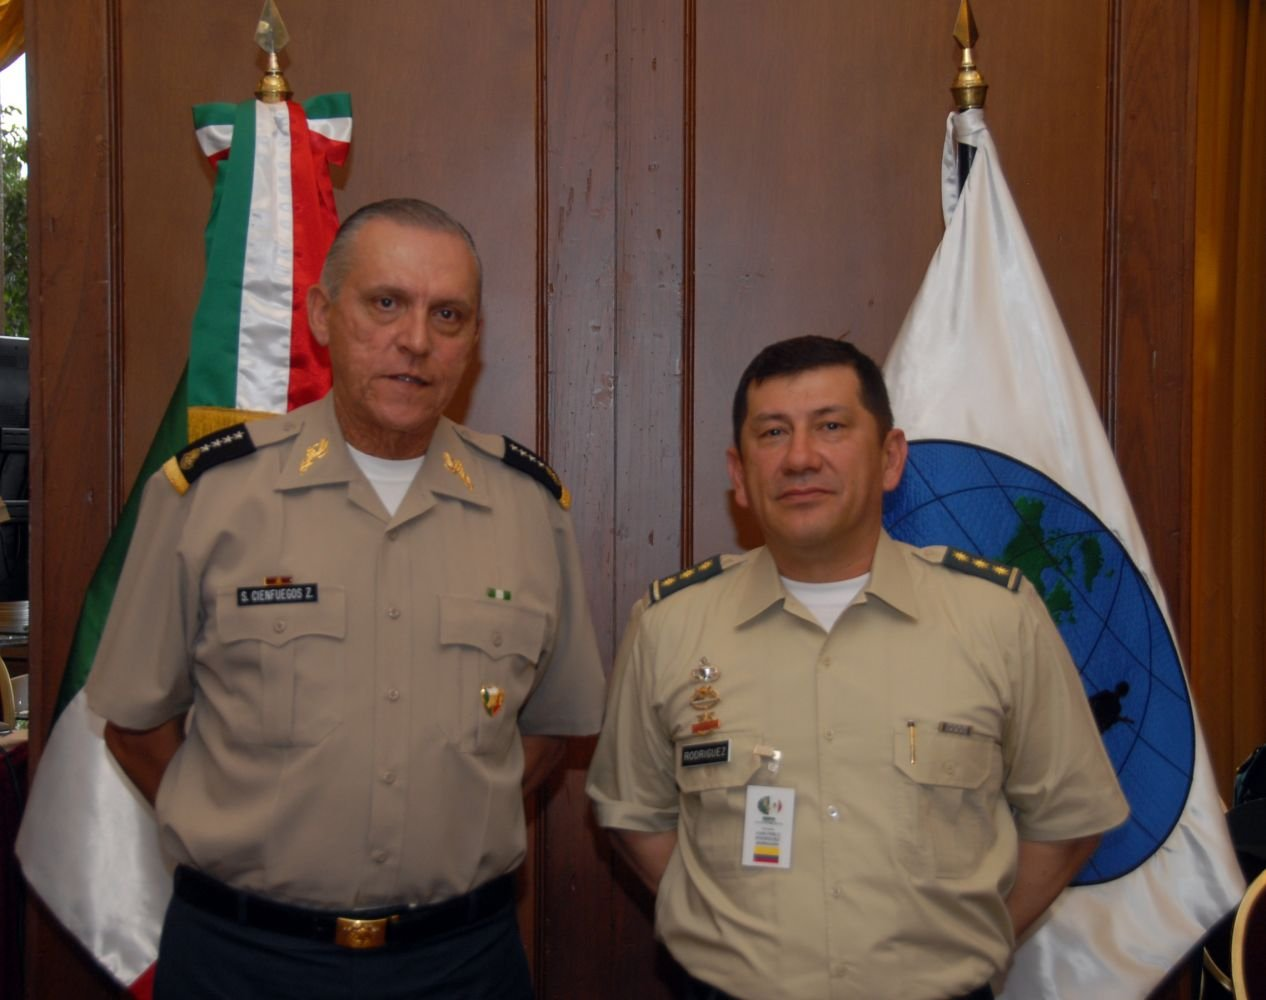 Western Hemisphere military leaders agree to cooperate against terrorism and effects of climate change